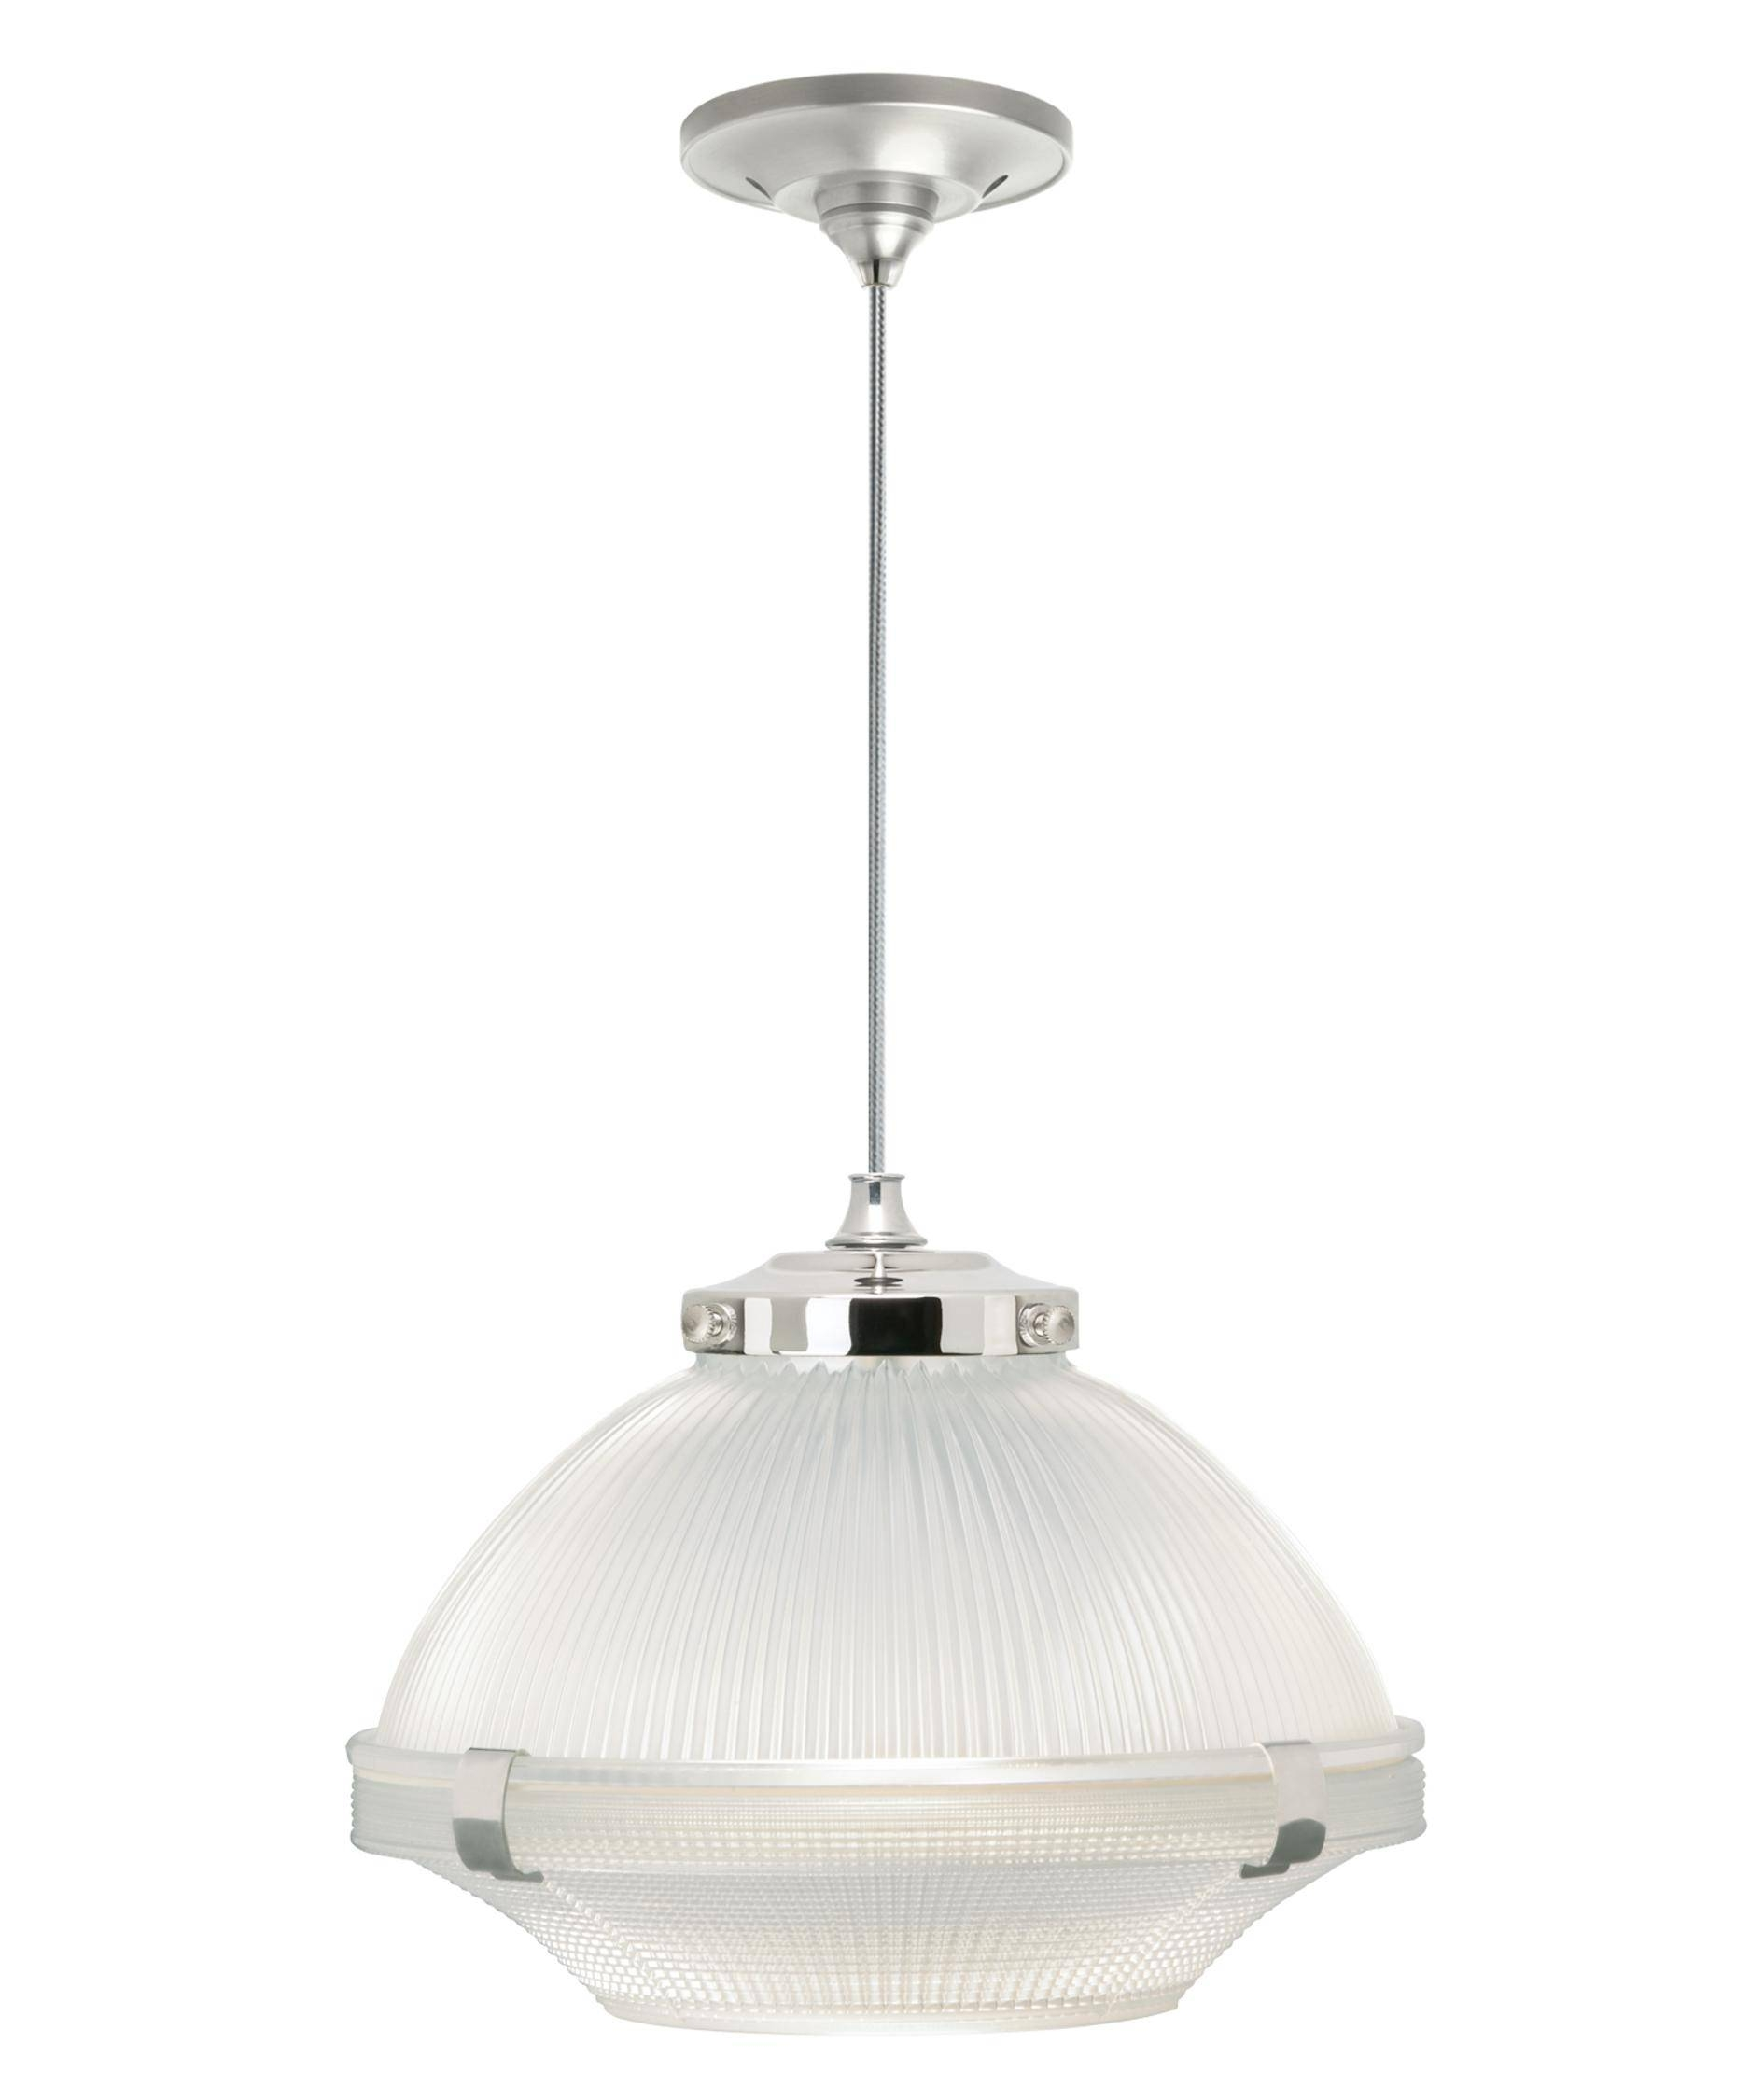 Loyalogy Product Search pertaining to Union Lighting Pendants (Image 8 of 15)